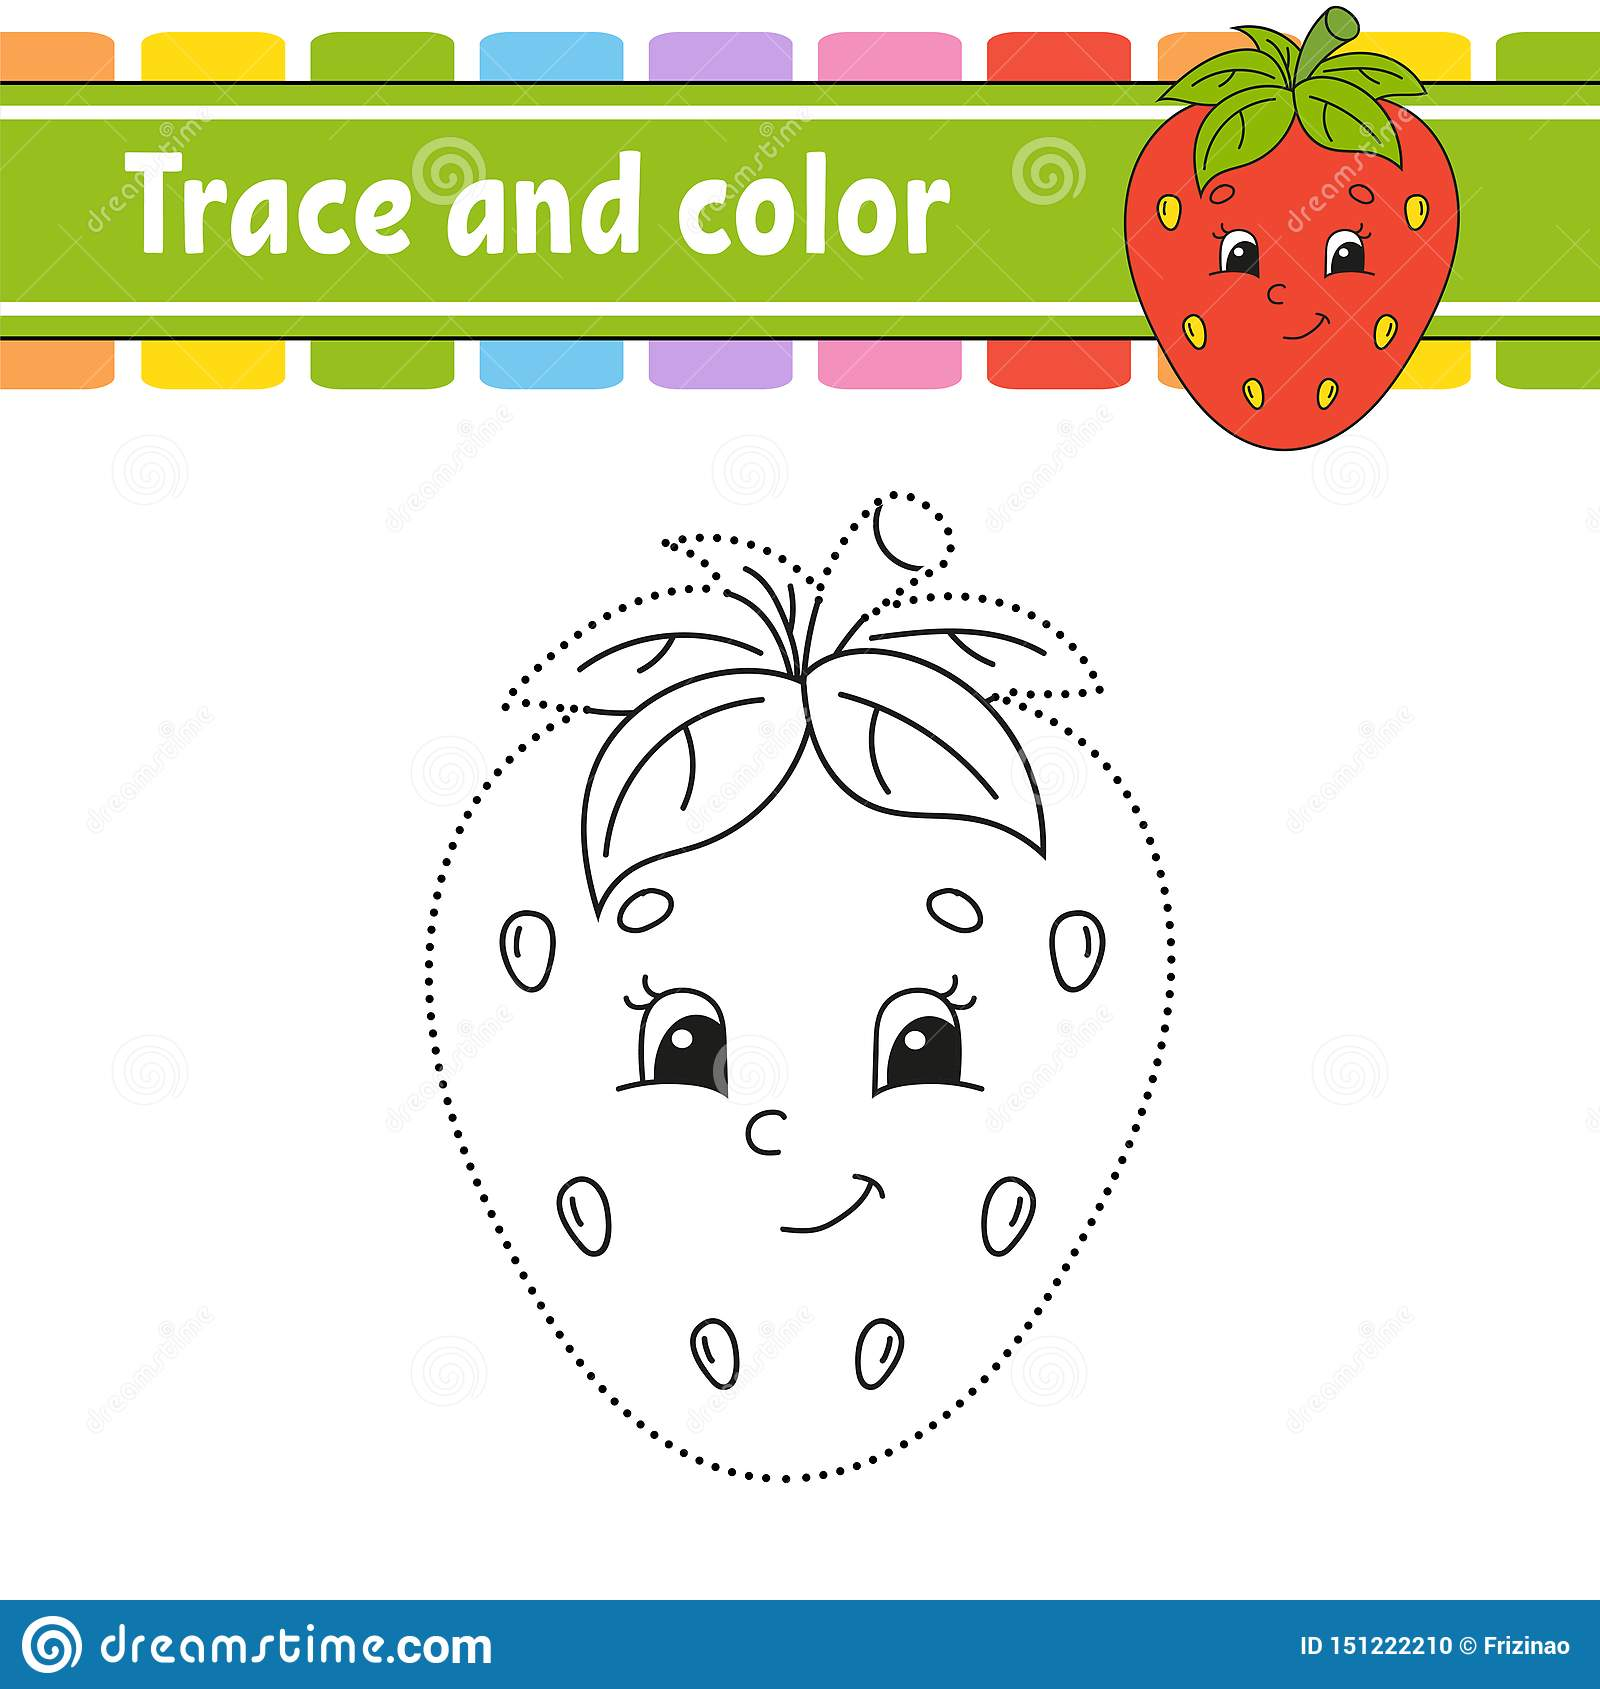 Trace And Color Handwriting Practice Education